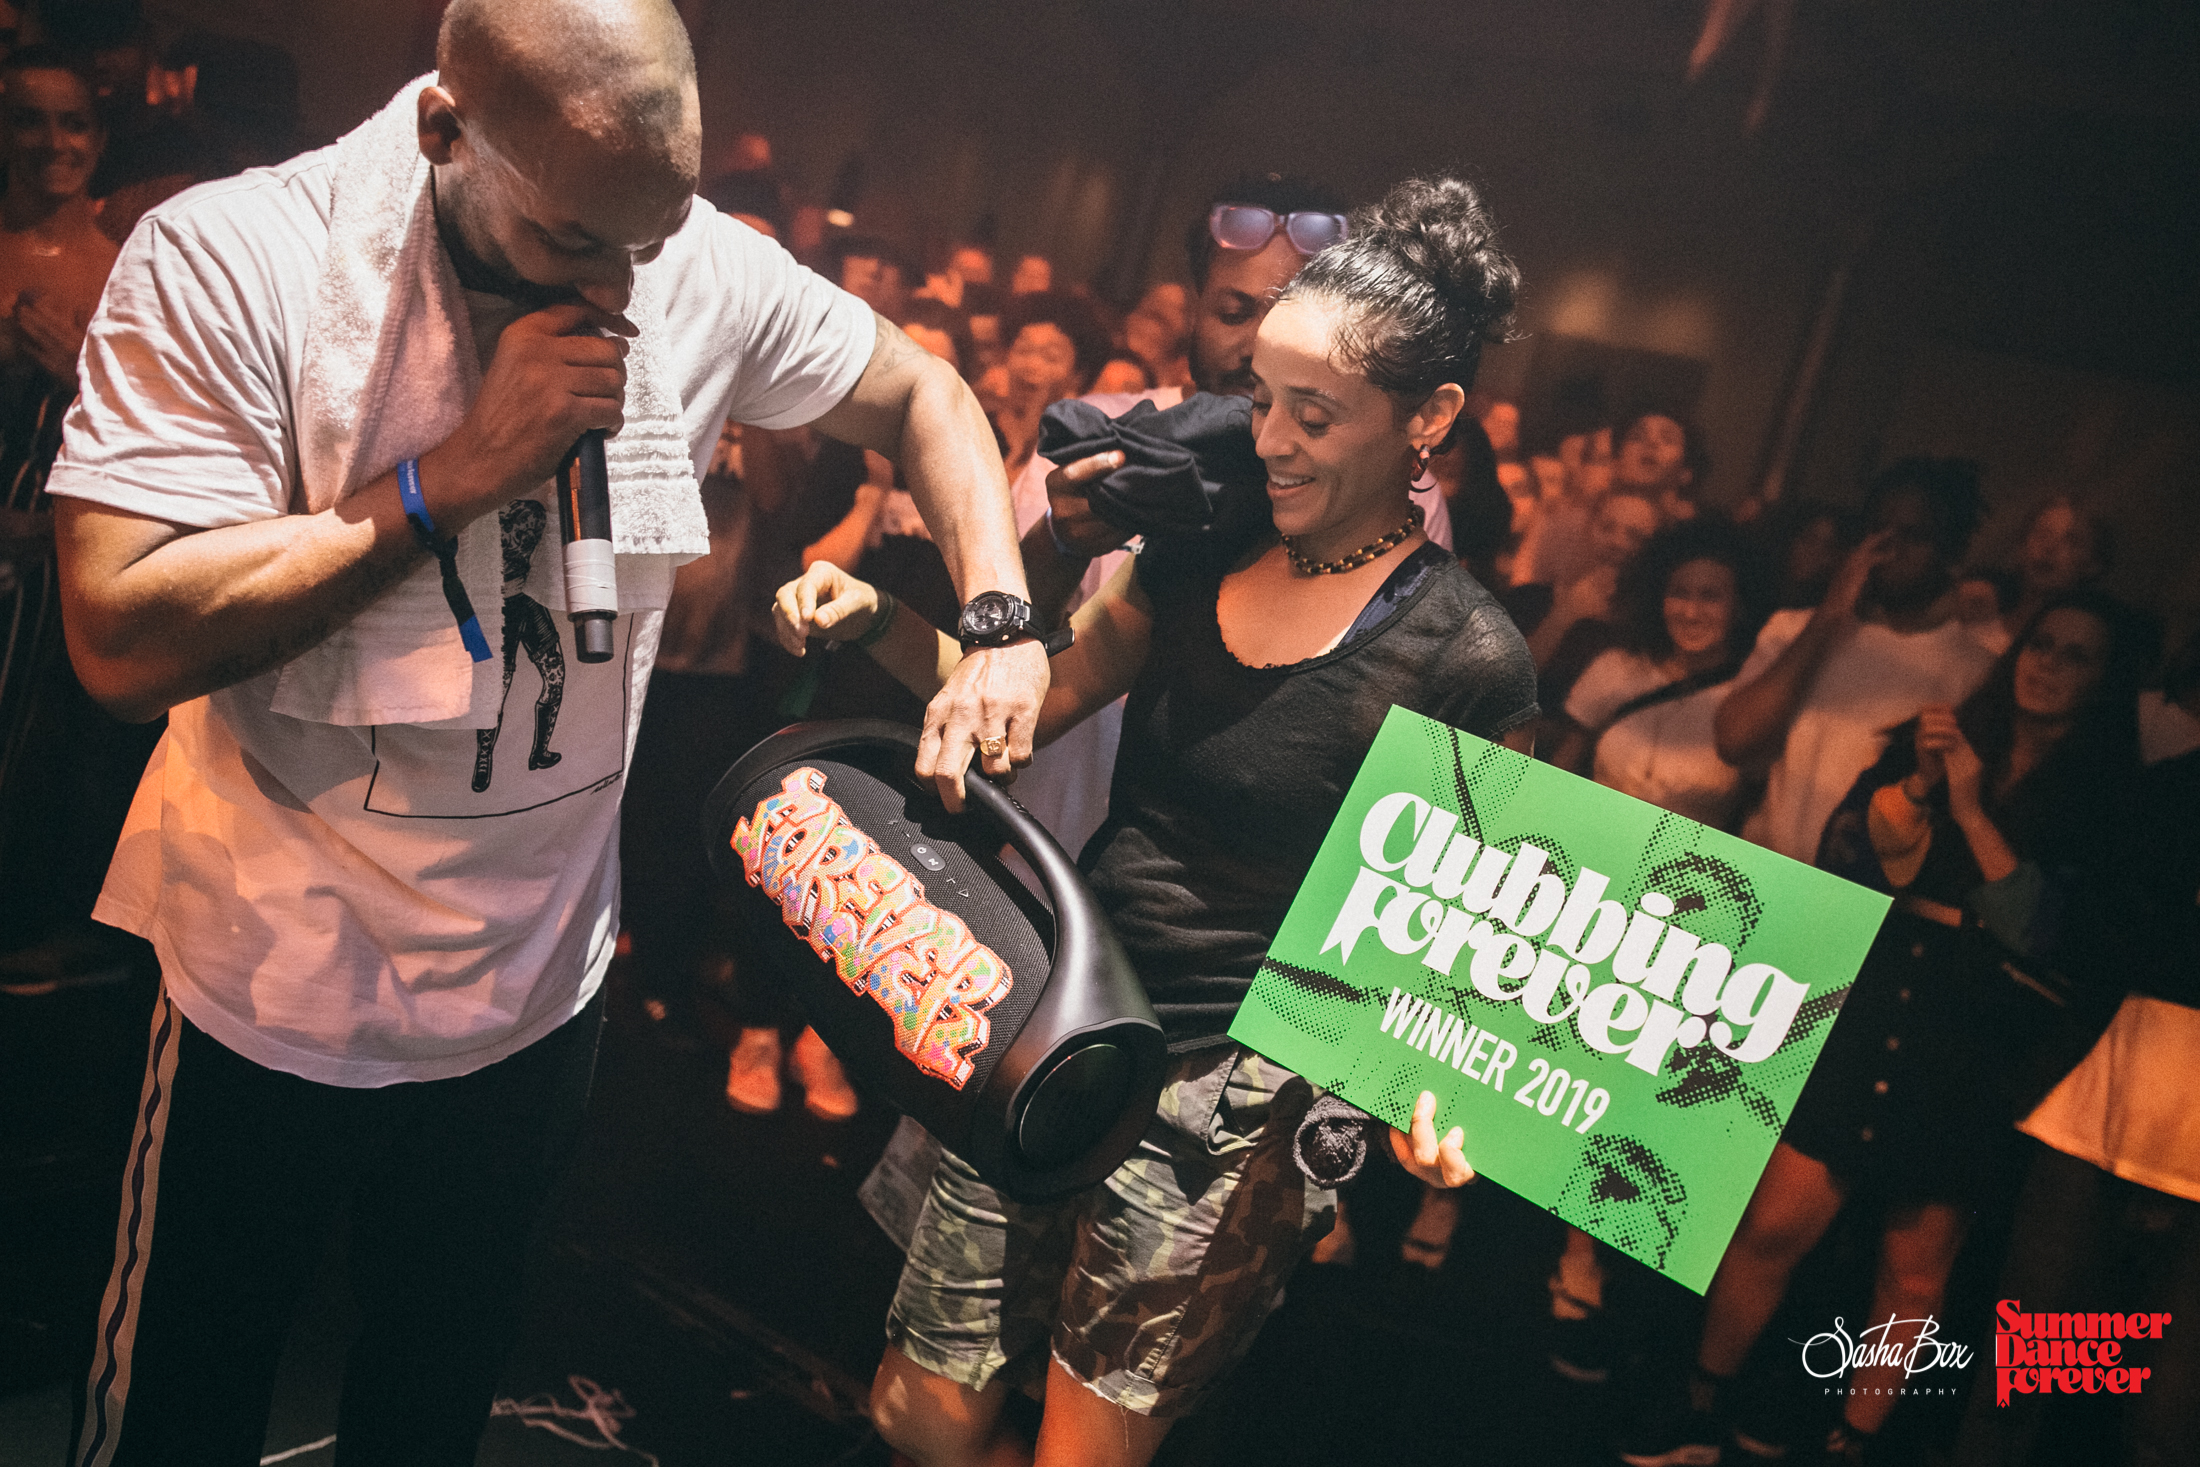 Rhodesia wins Clubbing Forever